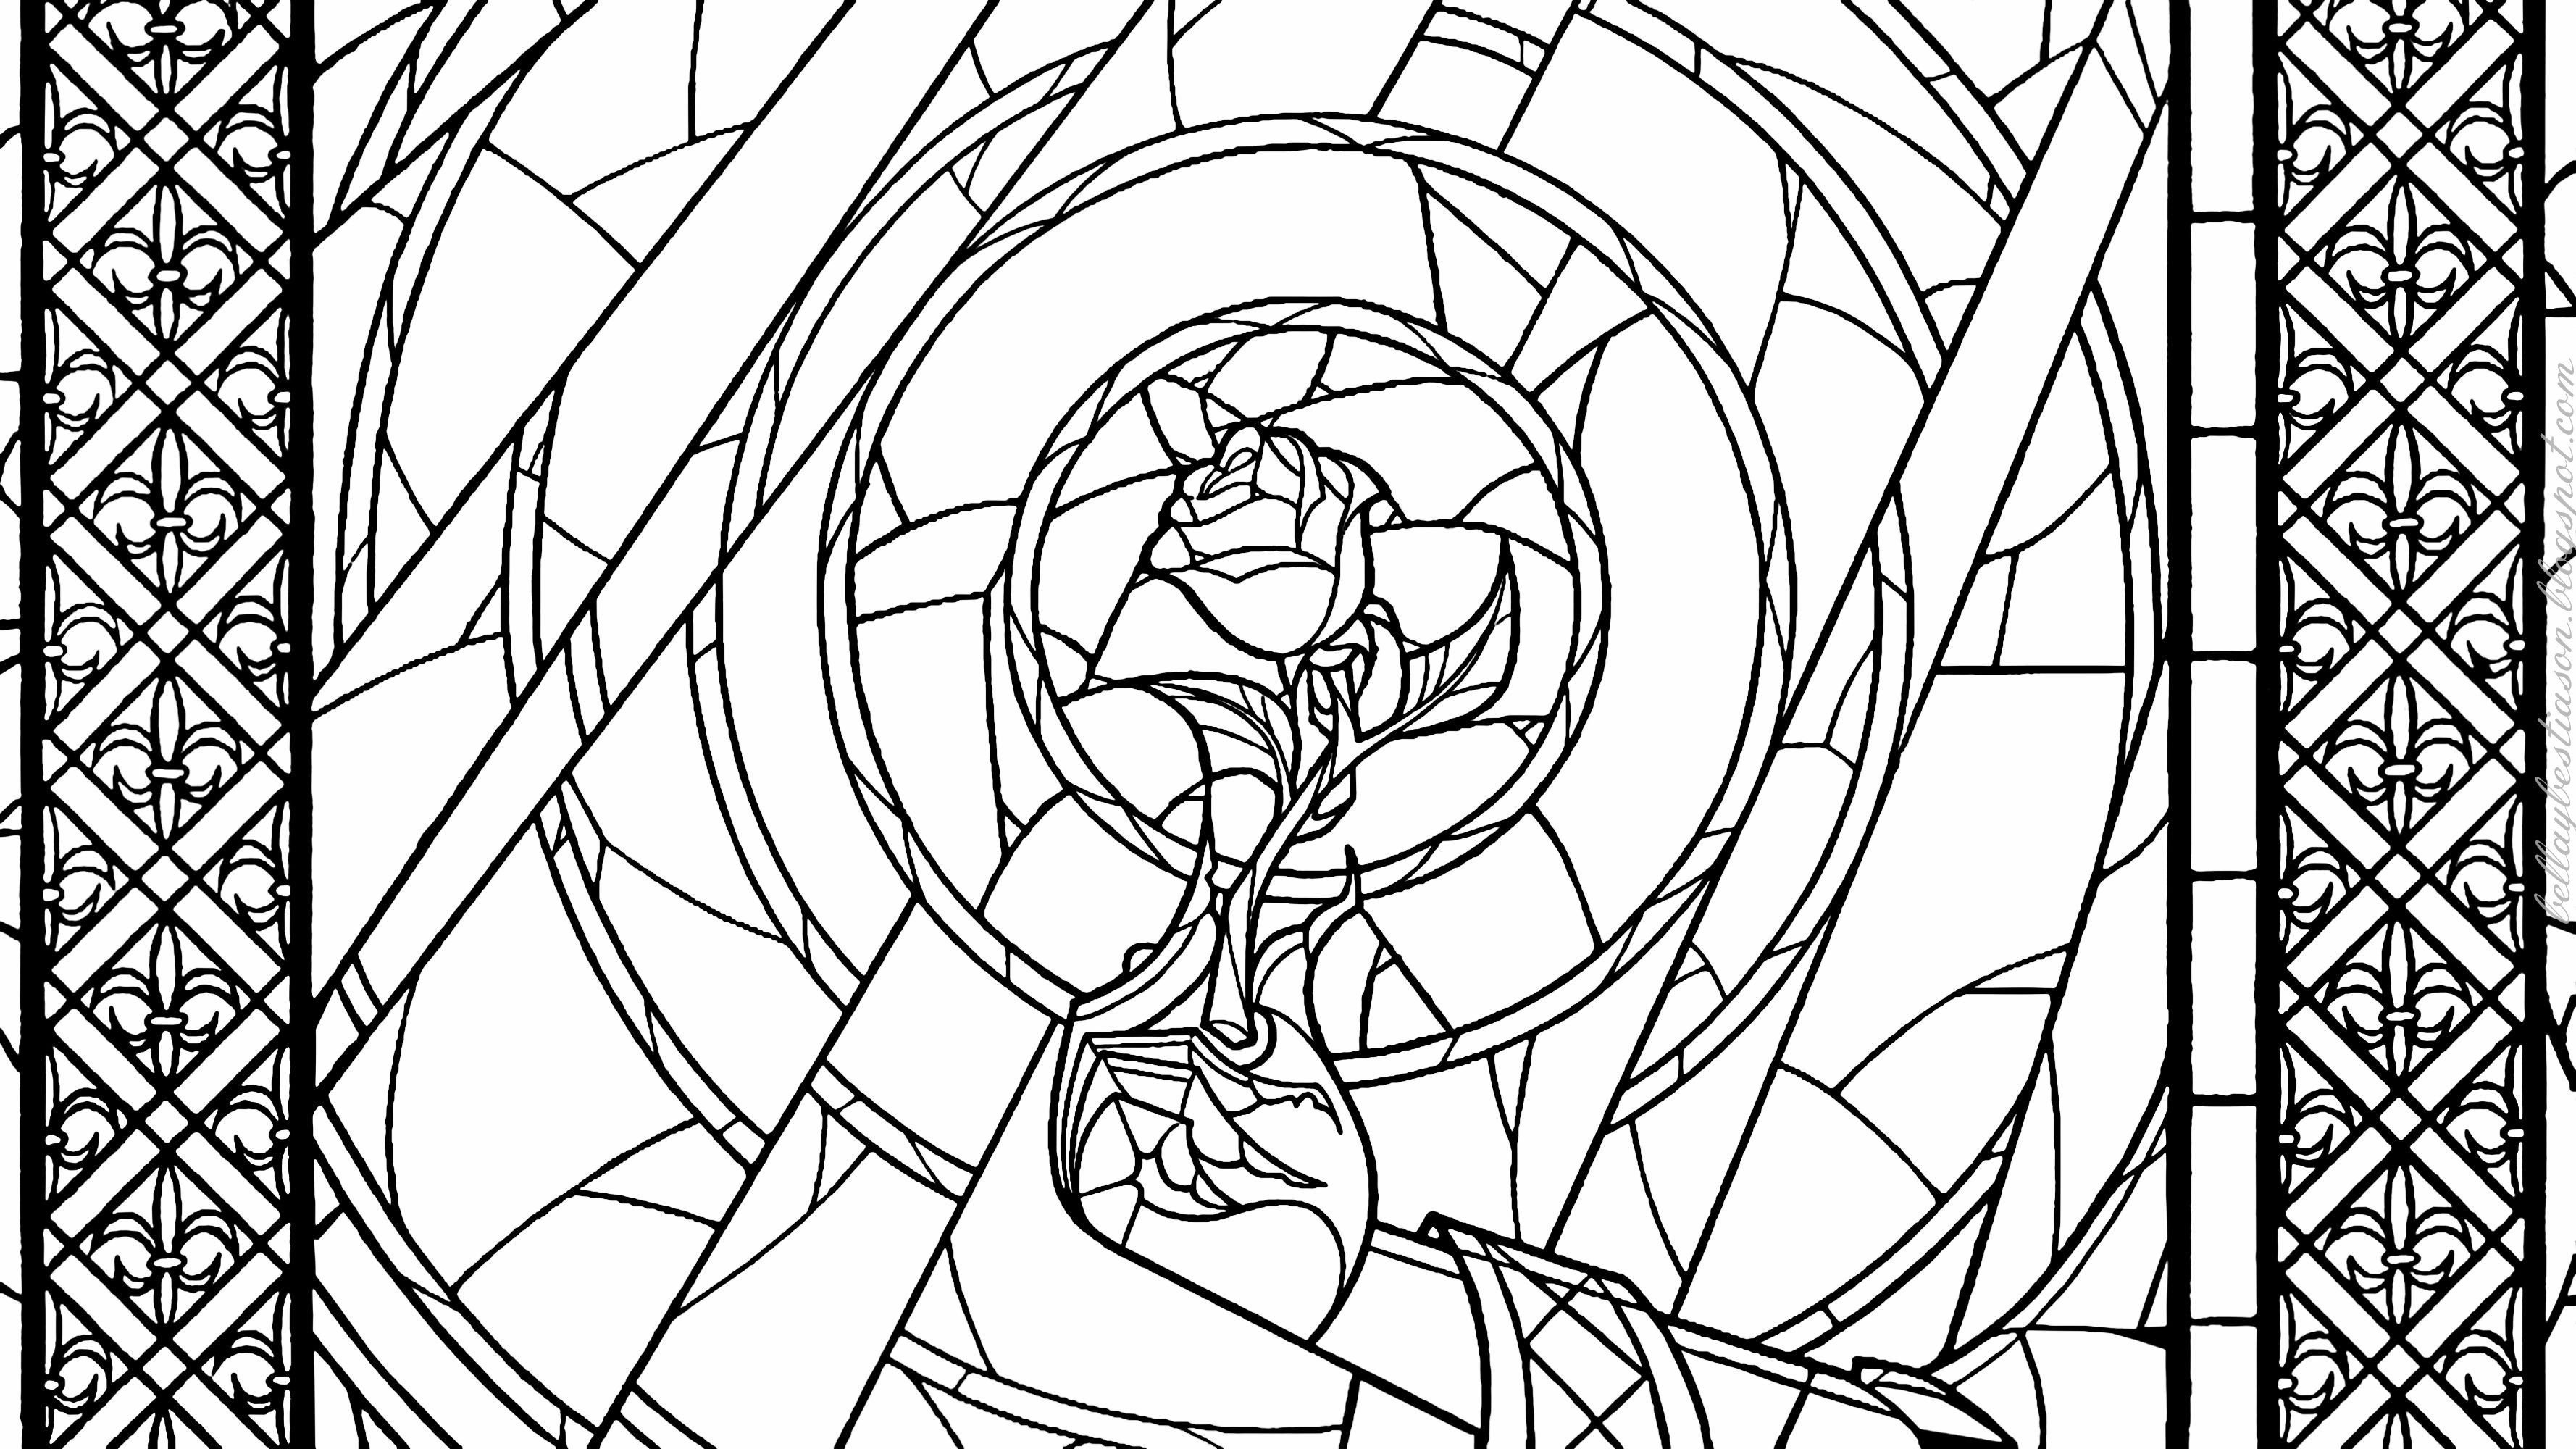 Beauty And The Beast Rose Stained Glass Coloring Page 384748 Jpg 3556 2000 Disney Stained Glass Rose Coloring Pages Coloring Pages